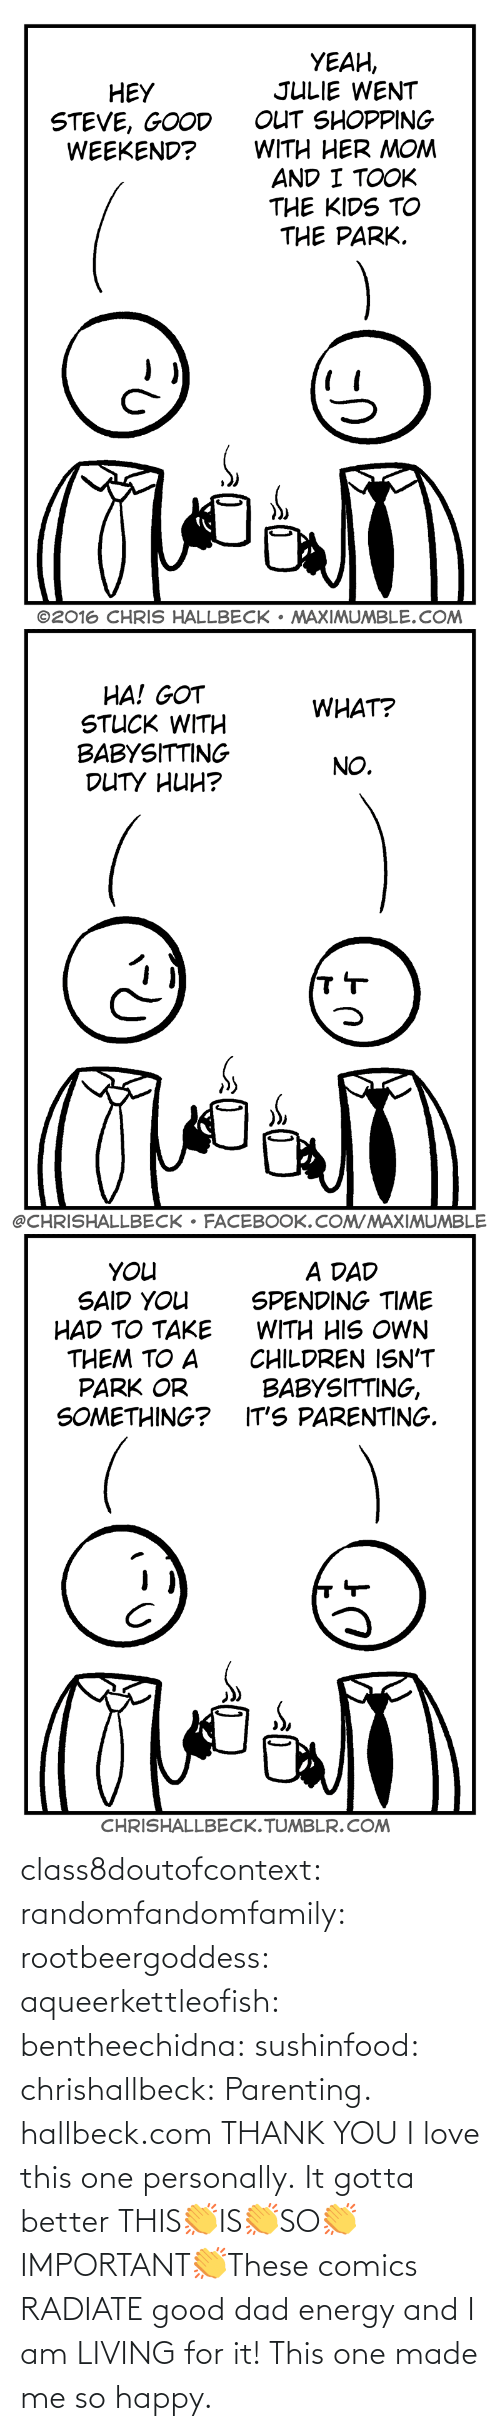 better: class8doutofcontext: randomfandomfamily:  rootbeergoddess:  aqueerkettleofish:  bentheechidna:  sushinfood:  chrishallbeck:  Parenting. hallbeck.com  THANK YOU  I love this one personally.    It gotta better   THIS👏IS👏SO👏IMPORTANT👏These comics RADIATE good dad energy and I am LIVING for it!    This one made me so happy.